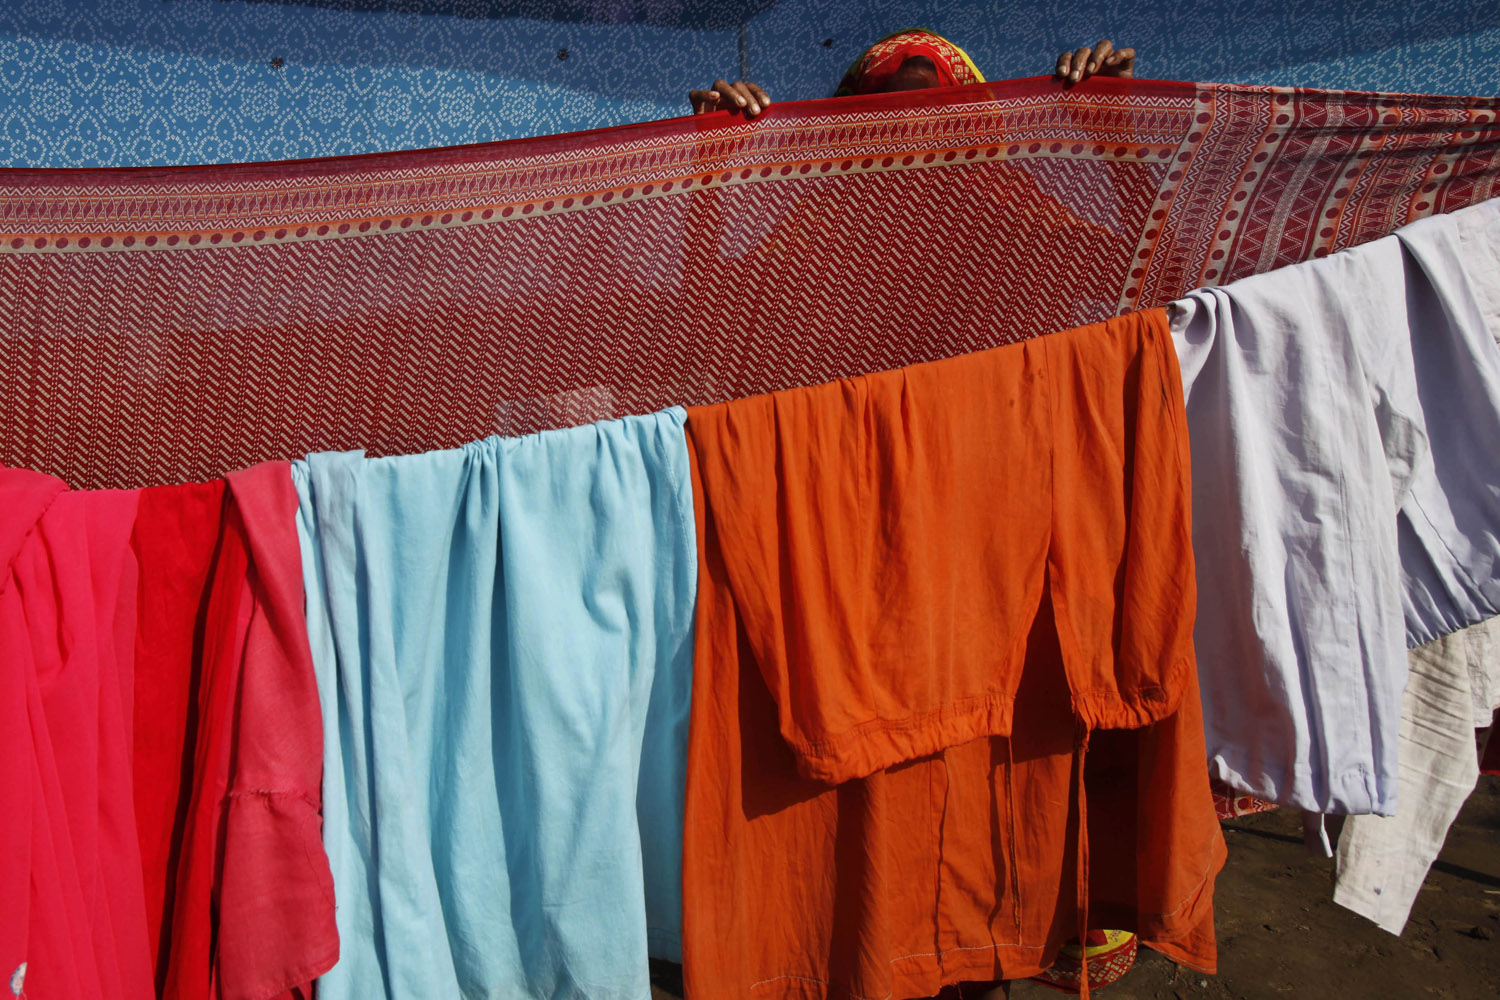 Aug. 12, 2012. A supporter of Indian yoga guru, Baba Ramdev, dries her clothes at the venue of an anti-corruption protest in New Delhi.